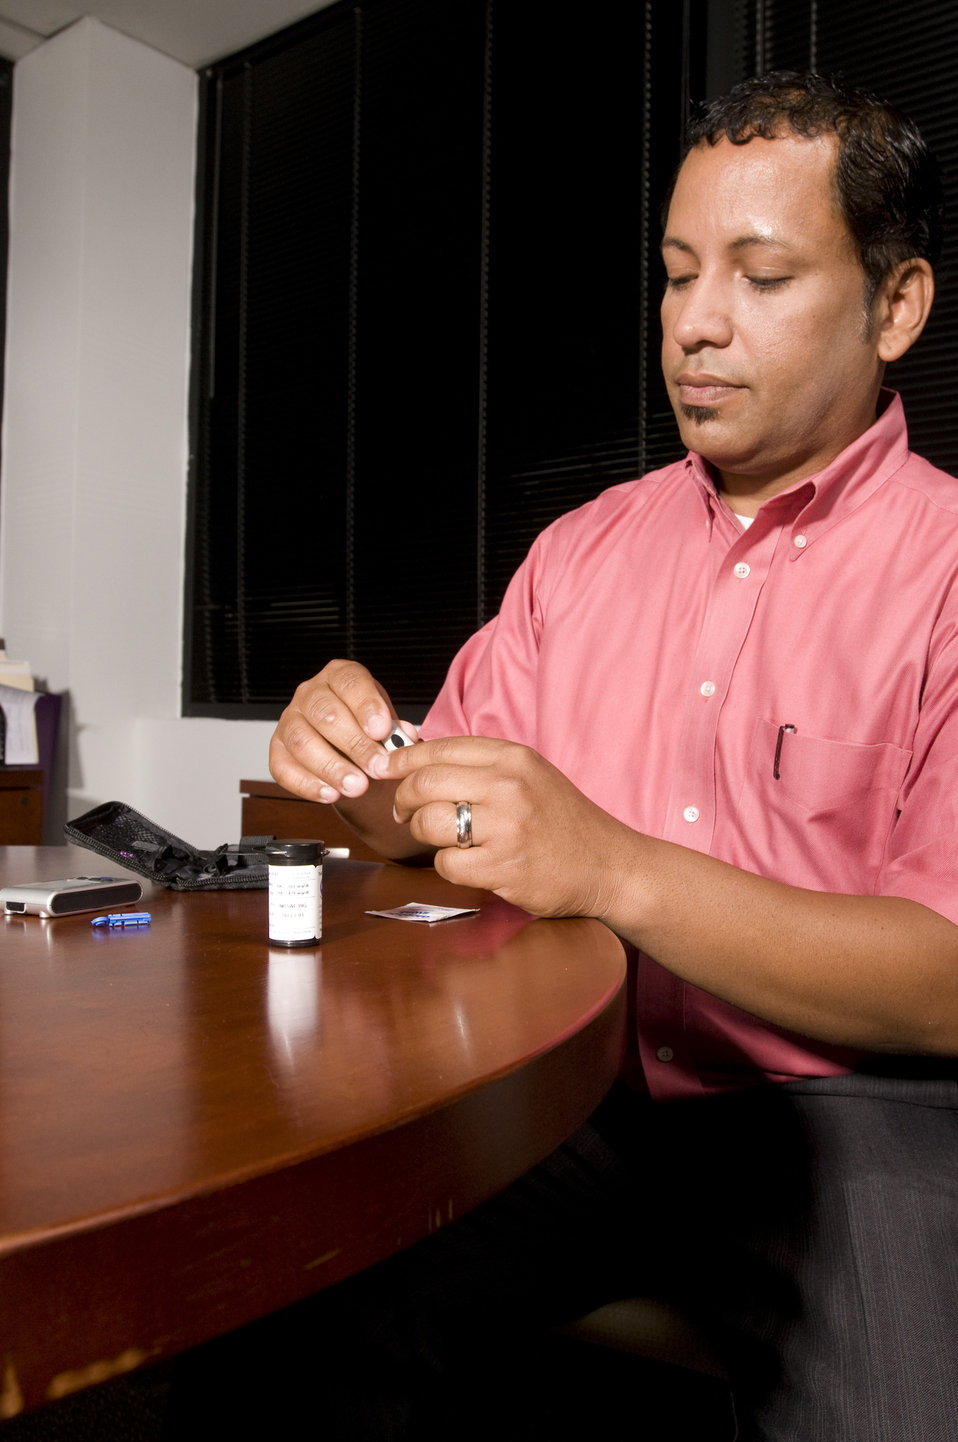 The man pictured here, was about to check his blood glucose level. This process is known as self-monitoring blood glucose, and it's a way fo